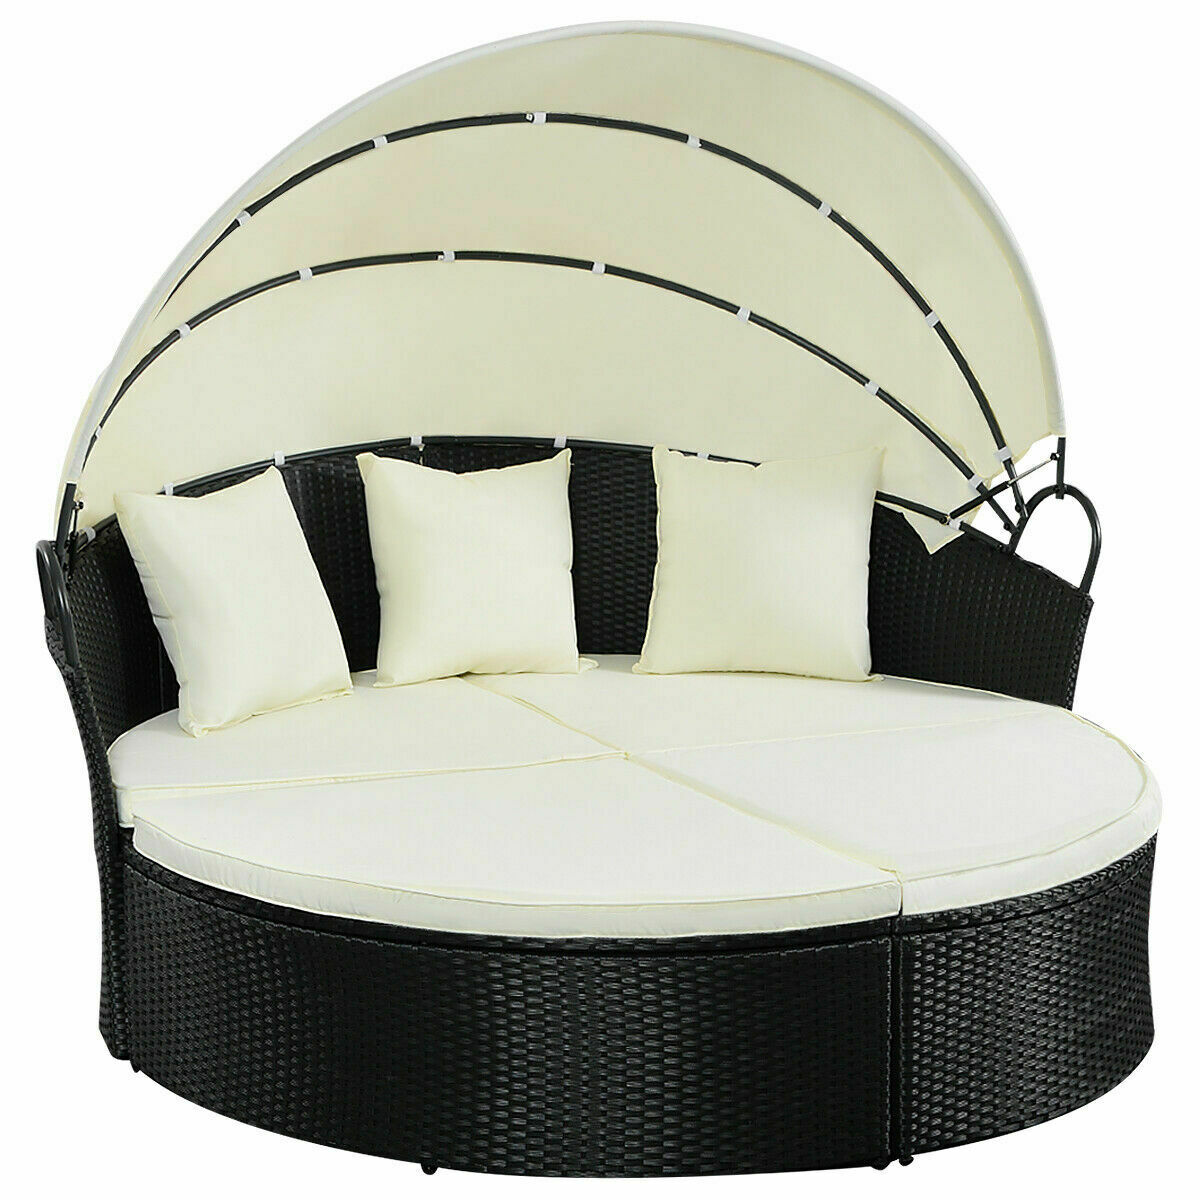 CityCW Outdoor Patio Sofa Furniture Round Retractable Canopy Daybed Black  Wicker Rattan